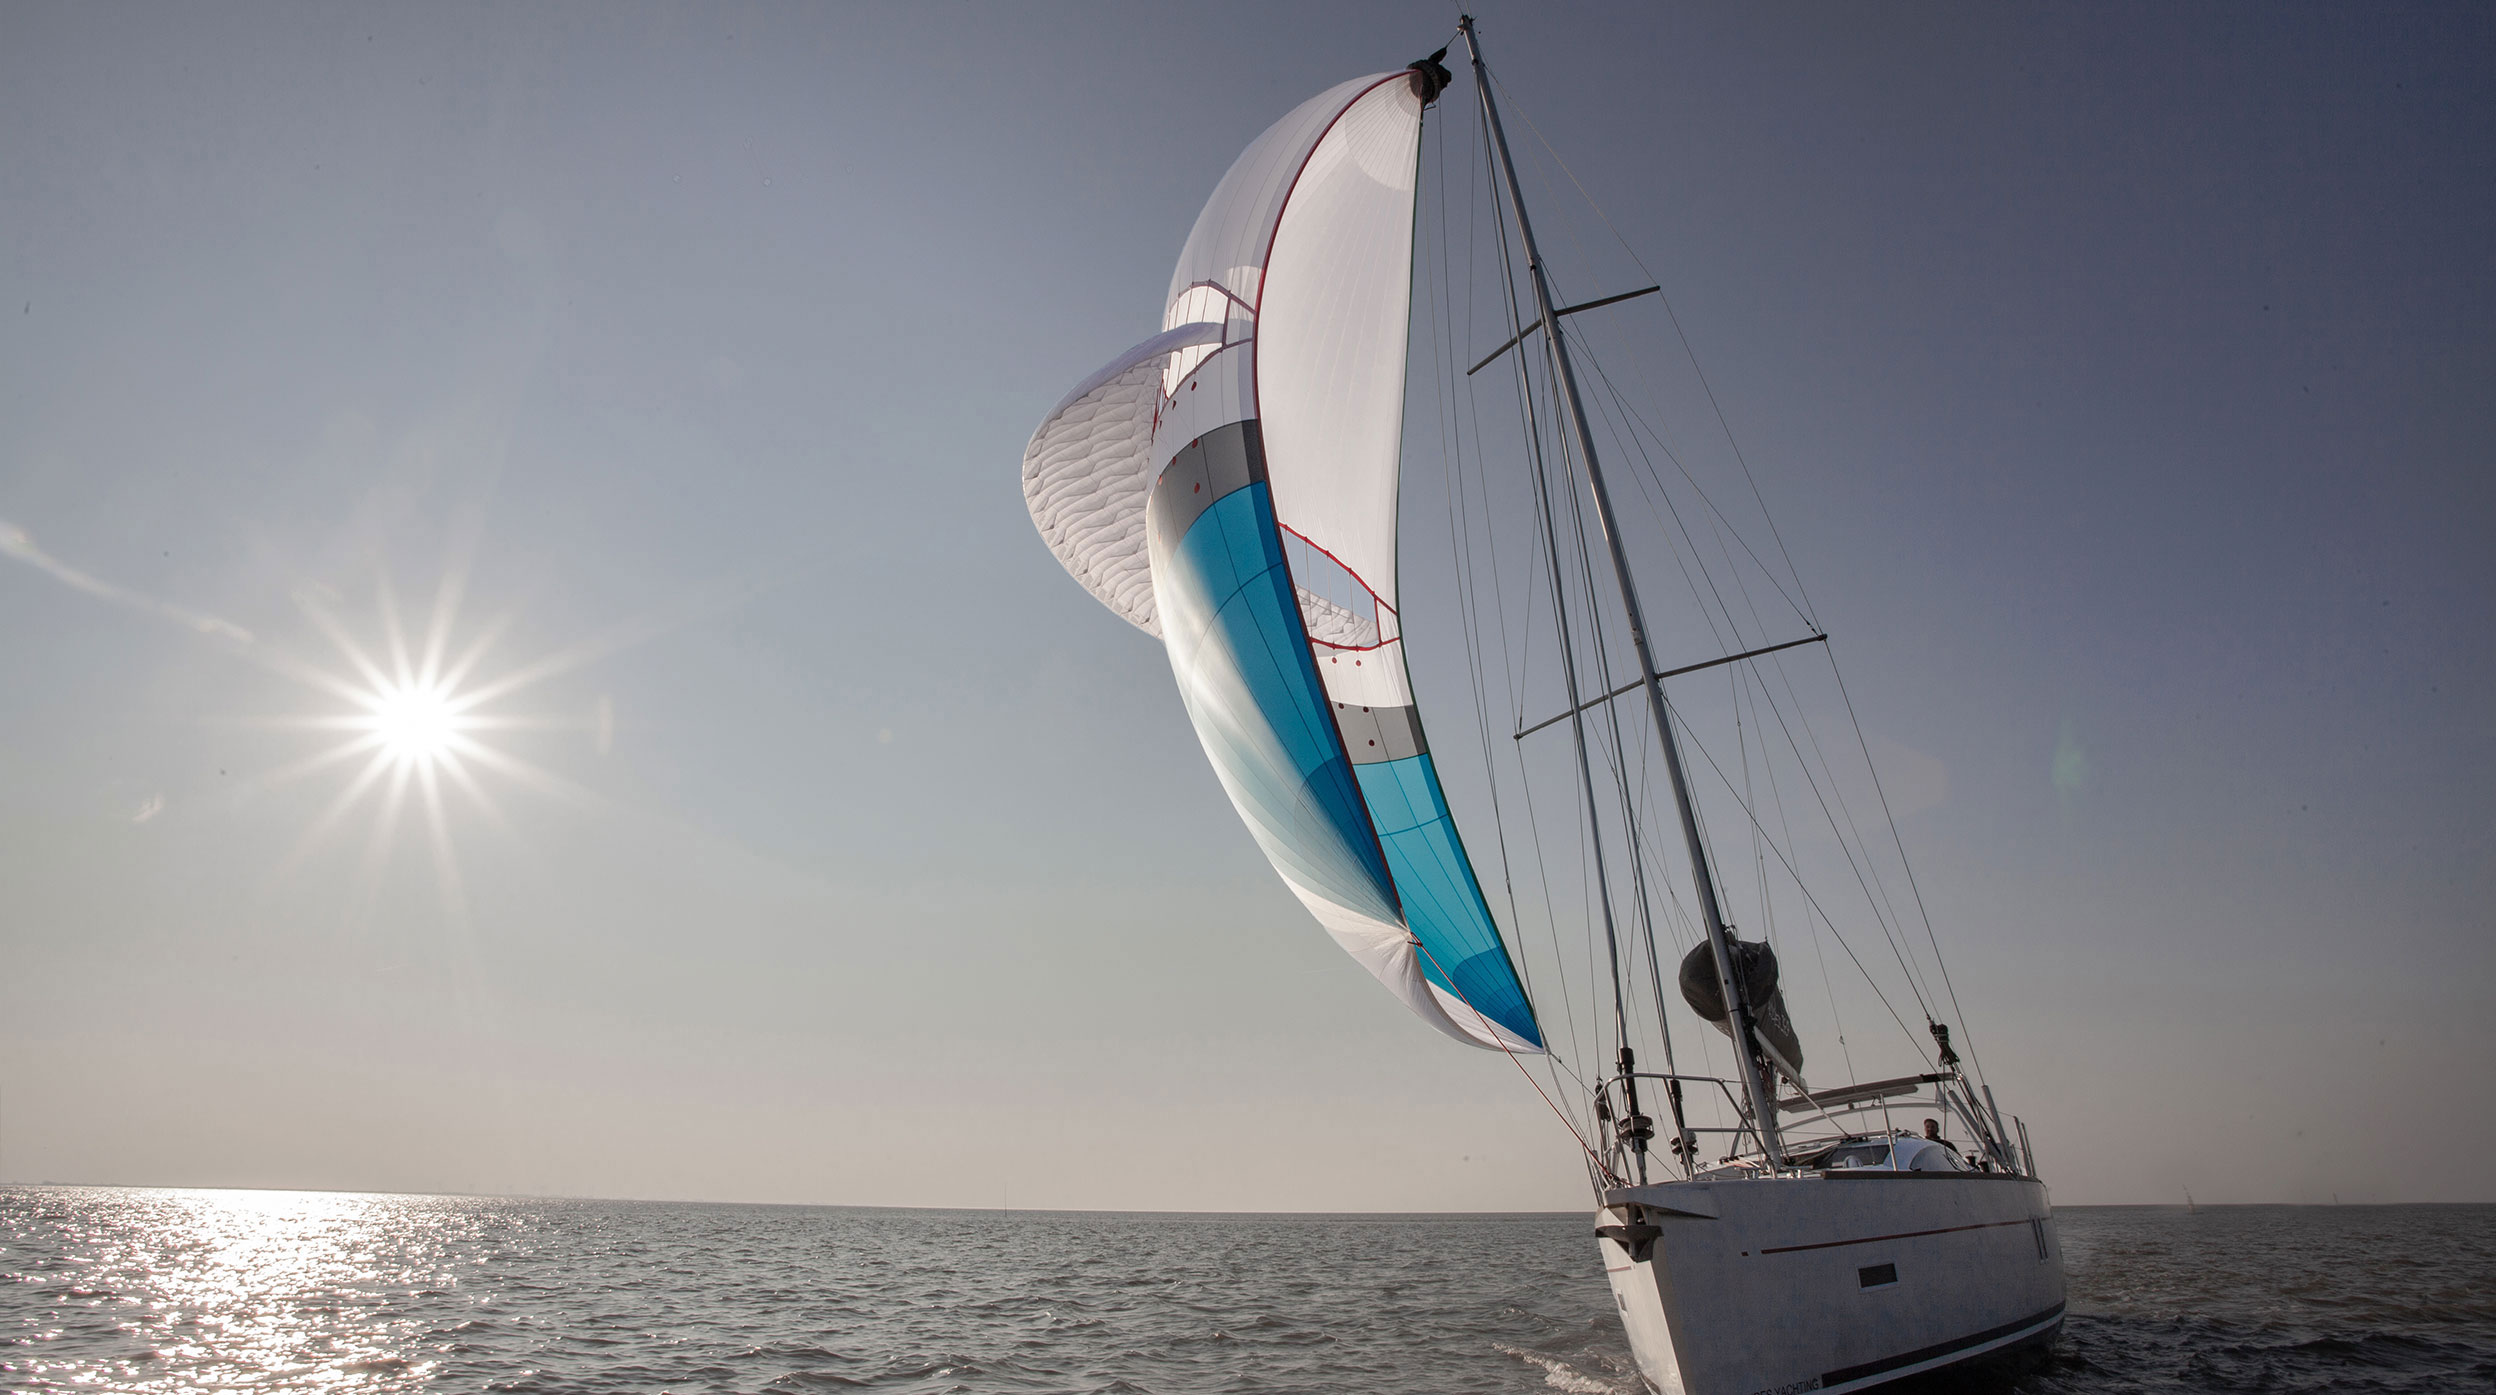 bora long distance sail